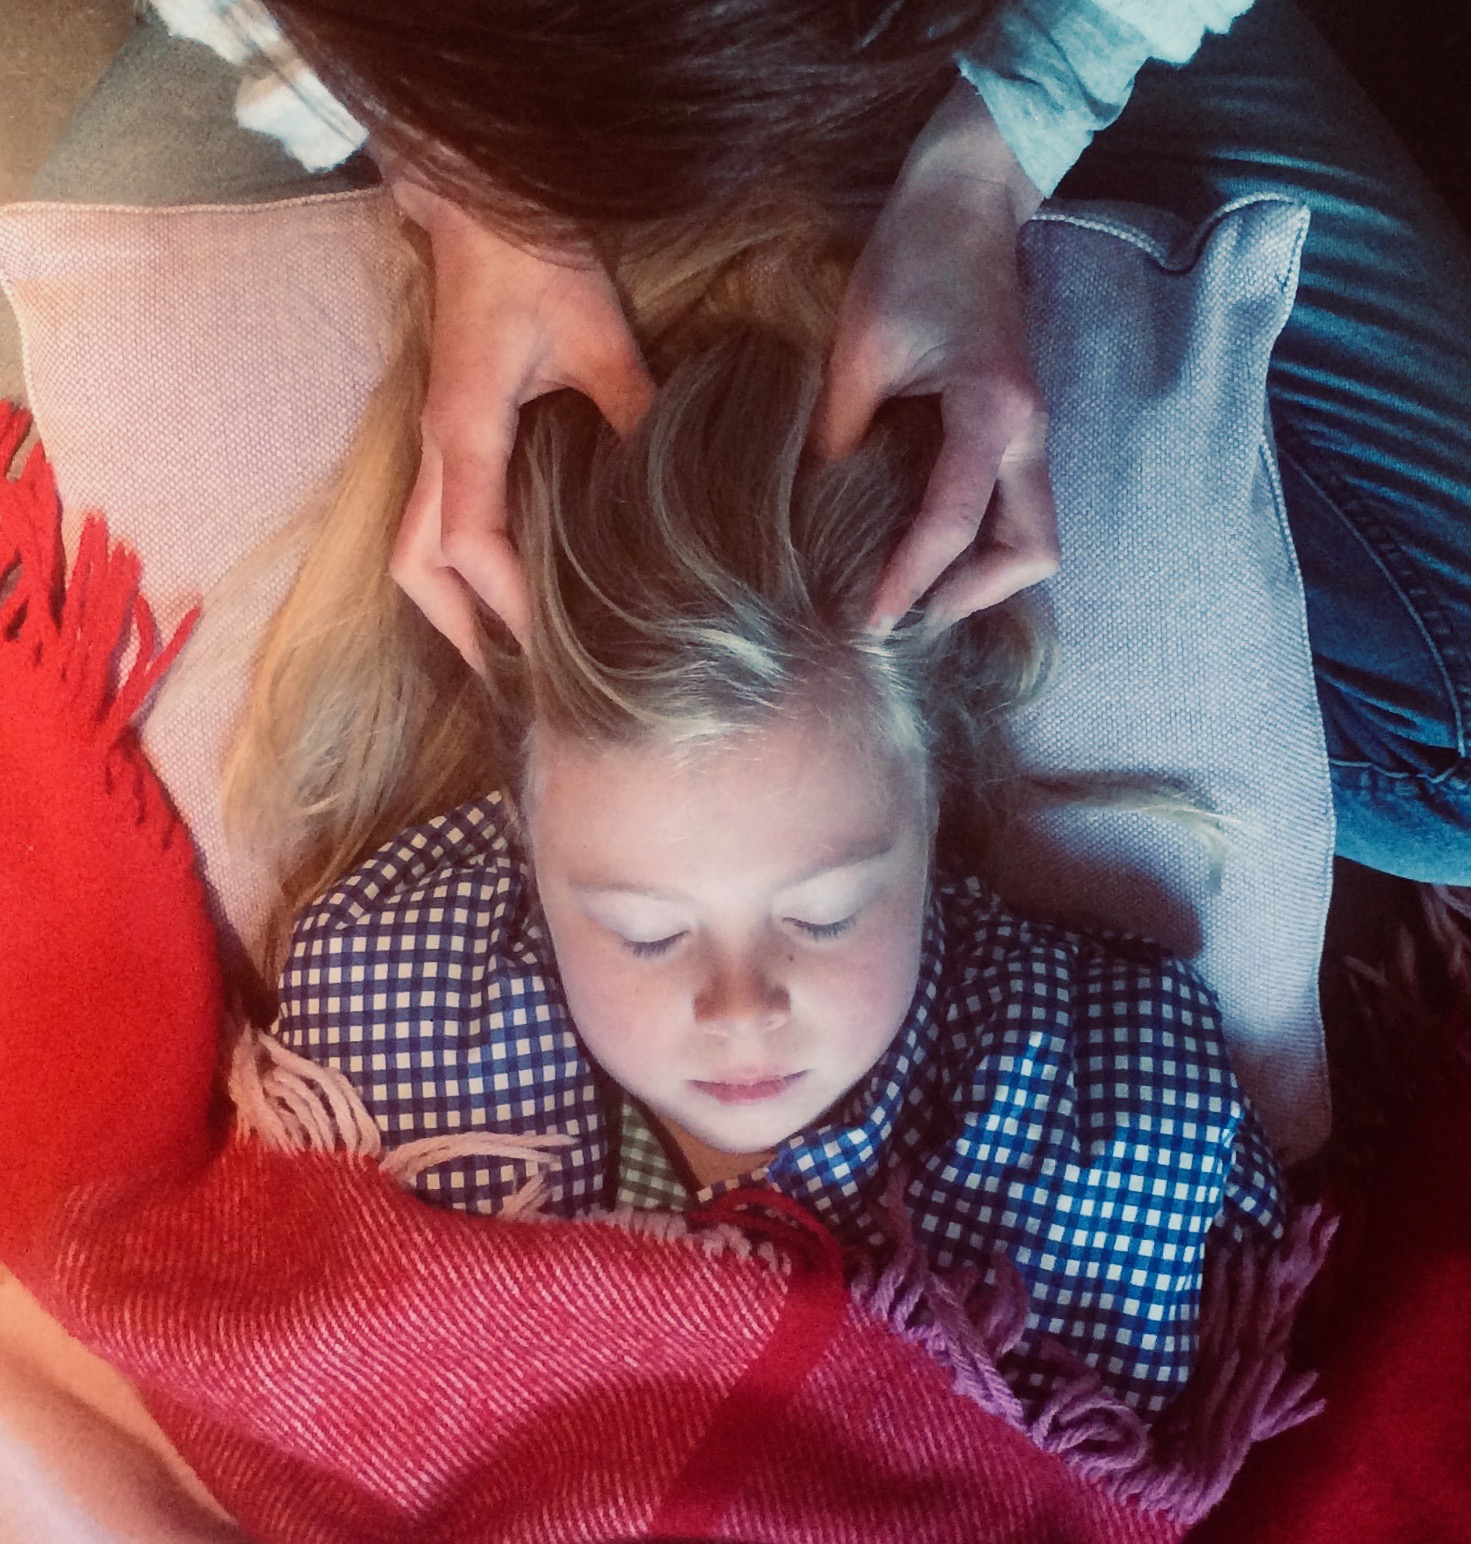 Family head massage workshop - Thursday 12th September 20195.30pm to 7pmat Botelet FarmThis candlelit head massage workshop is for parents/carers and their children to learn together how to give a calming head massage. Costs £15 for each parent and child (£7.50 per person). Book your place on this course.